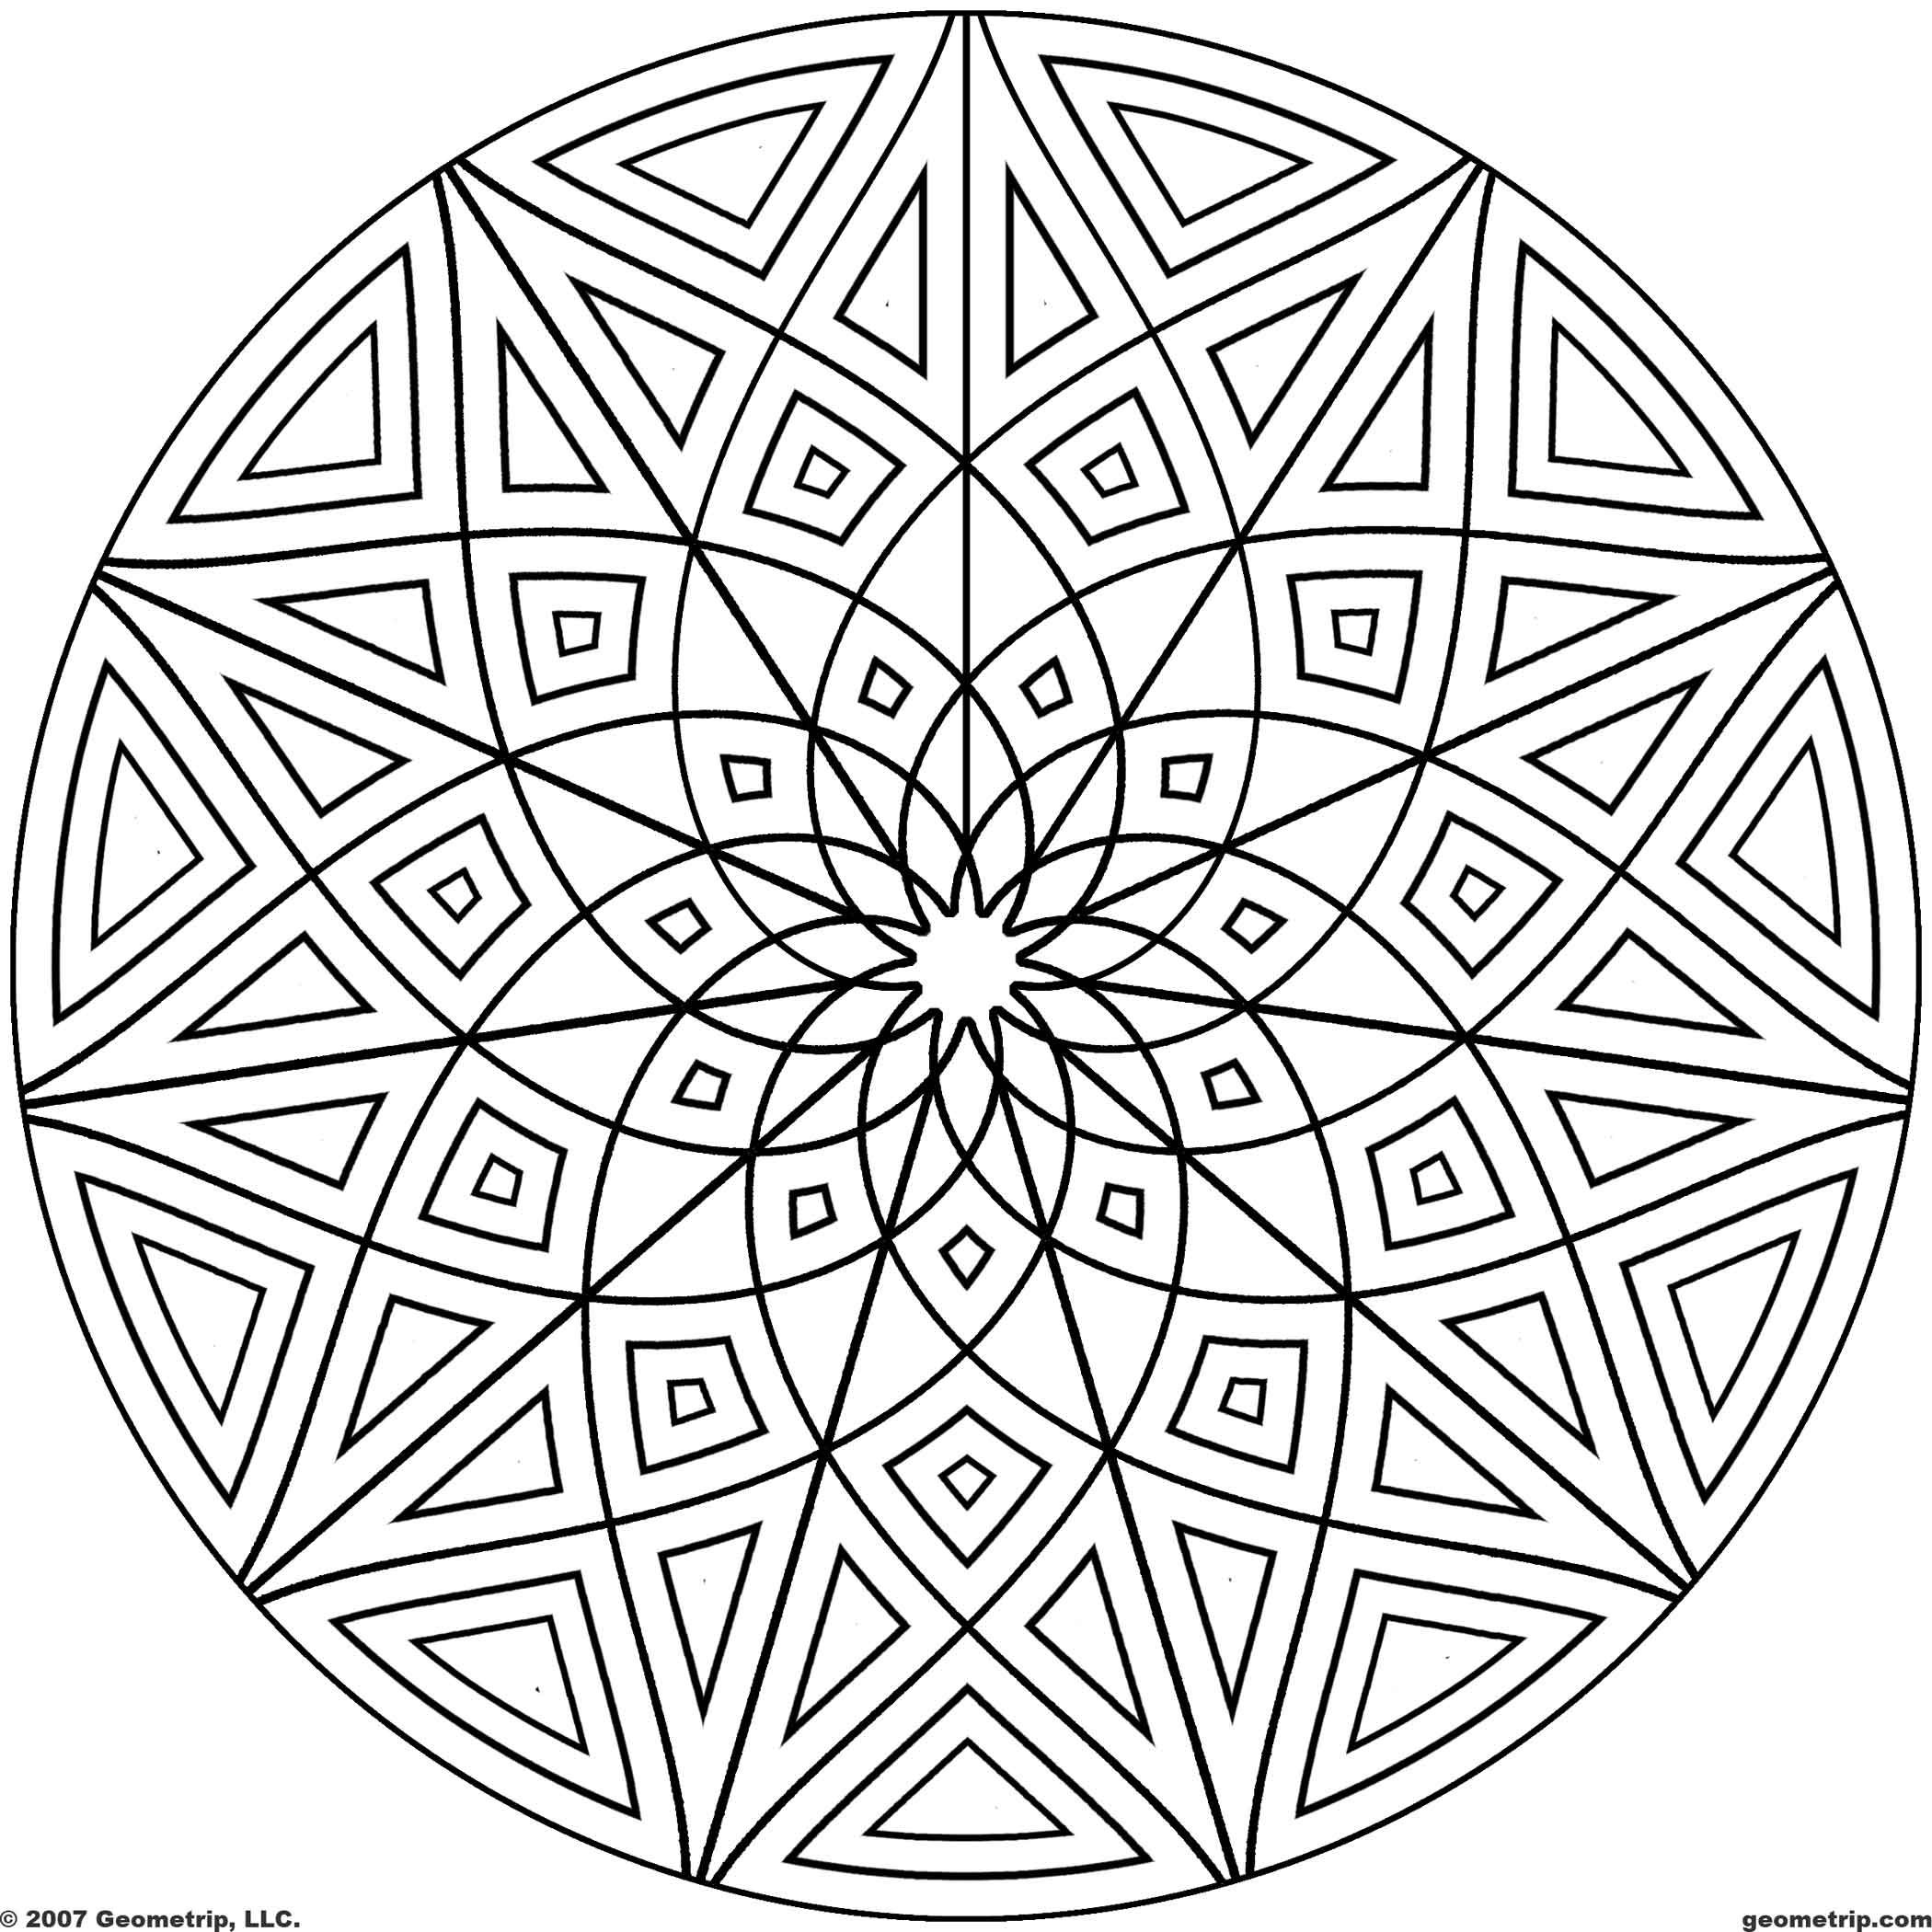 Download Or Print This Amazing Coloring Page 15 Pics Of